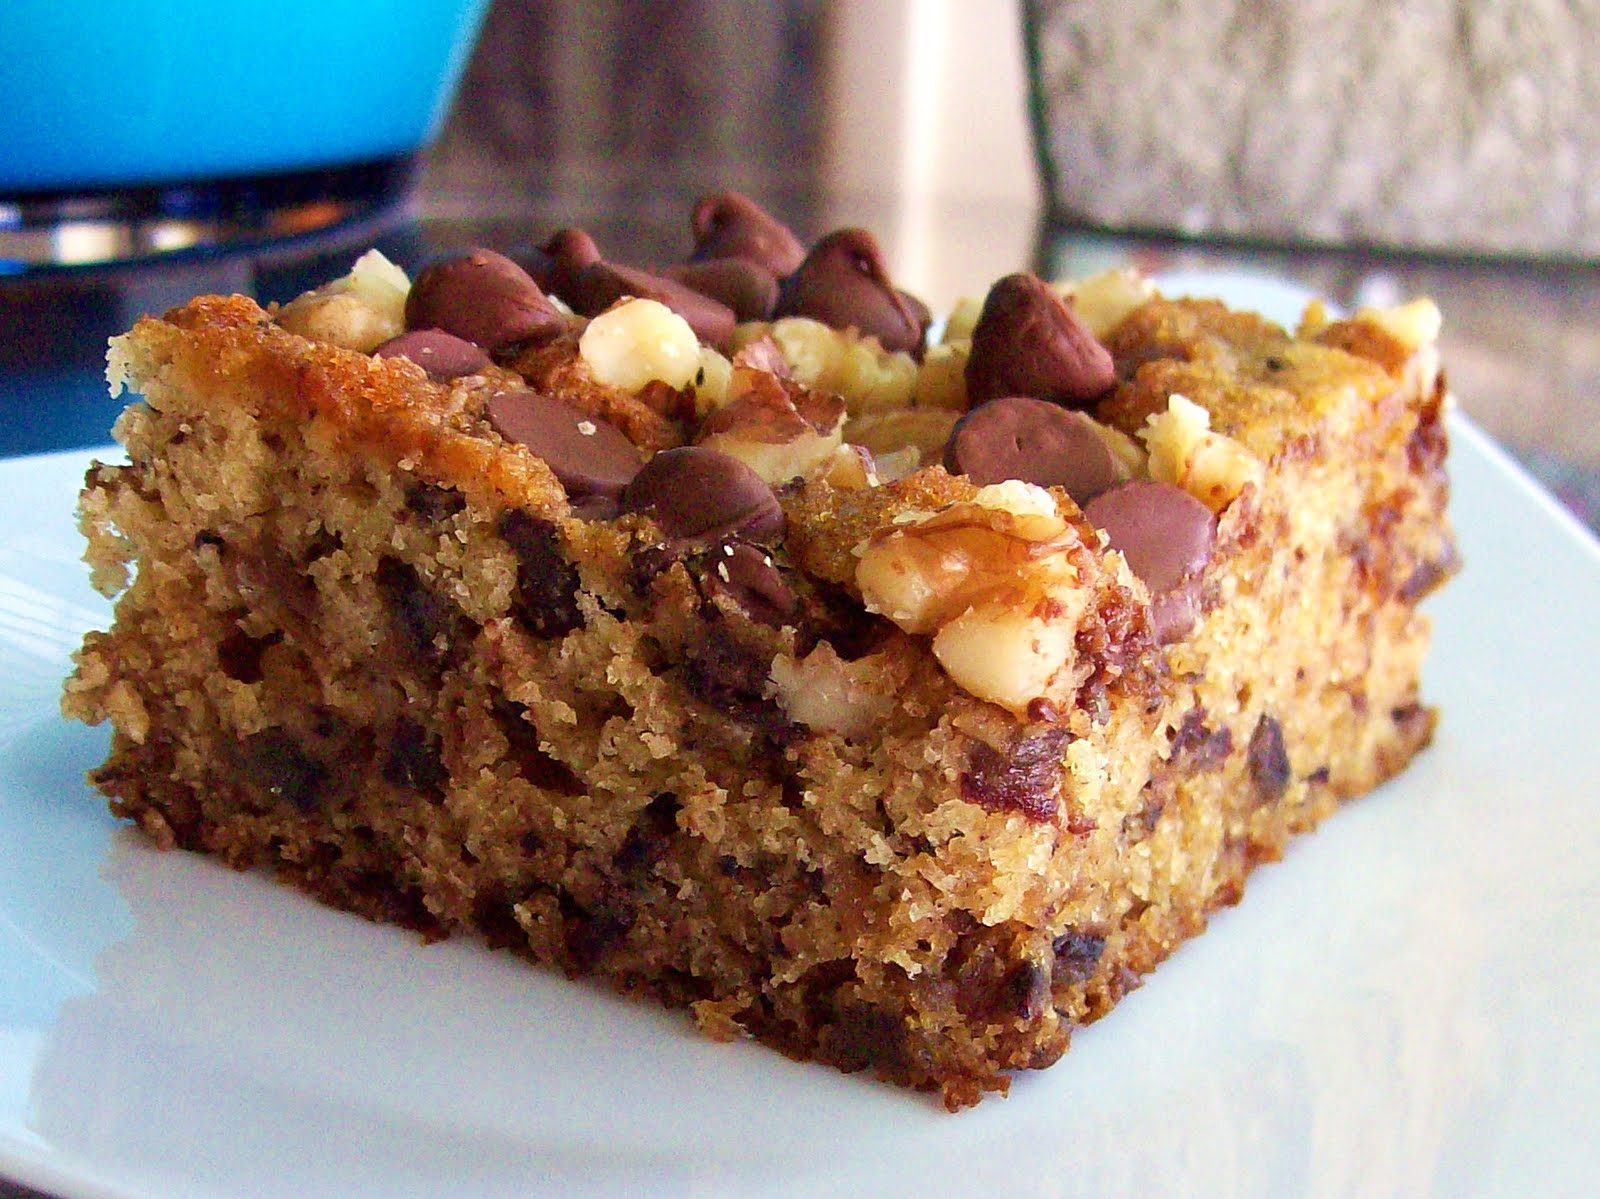 Healthy date cake recipe with Bard Valley Medjool Dates